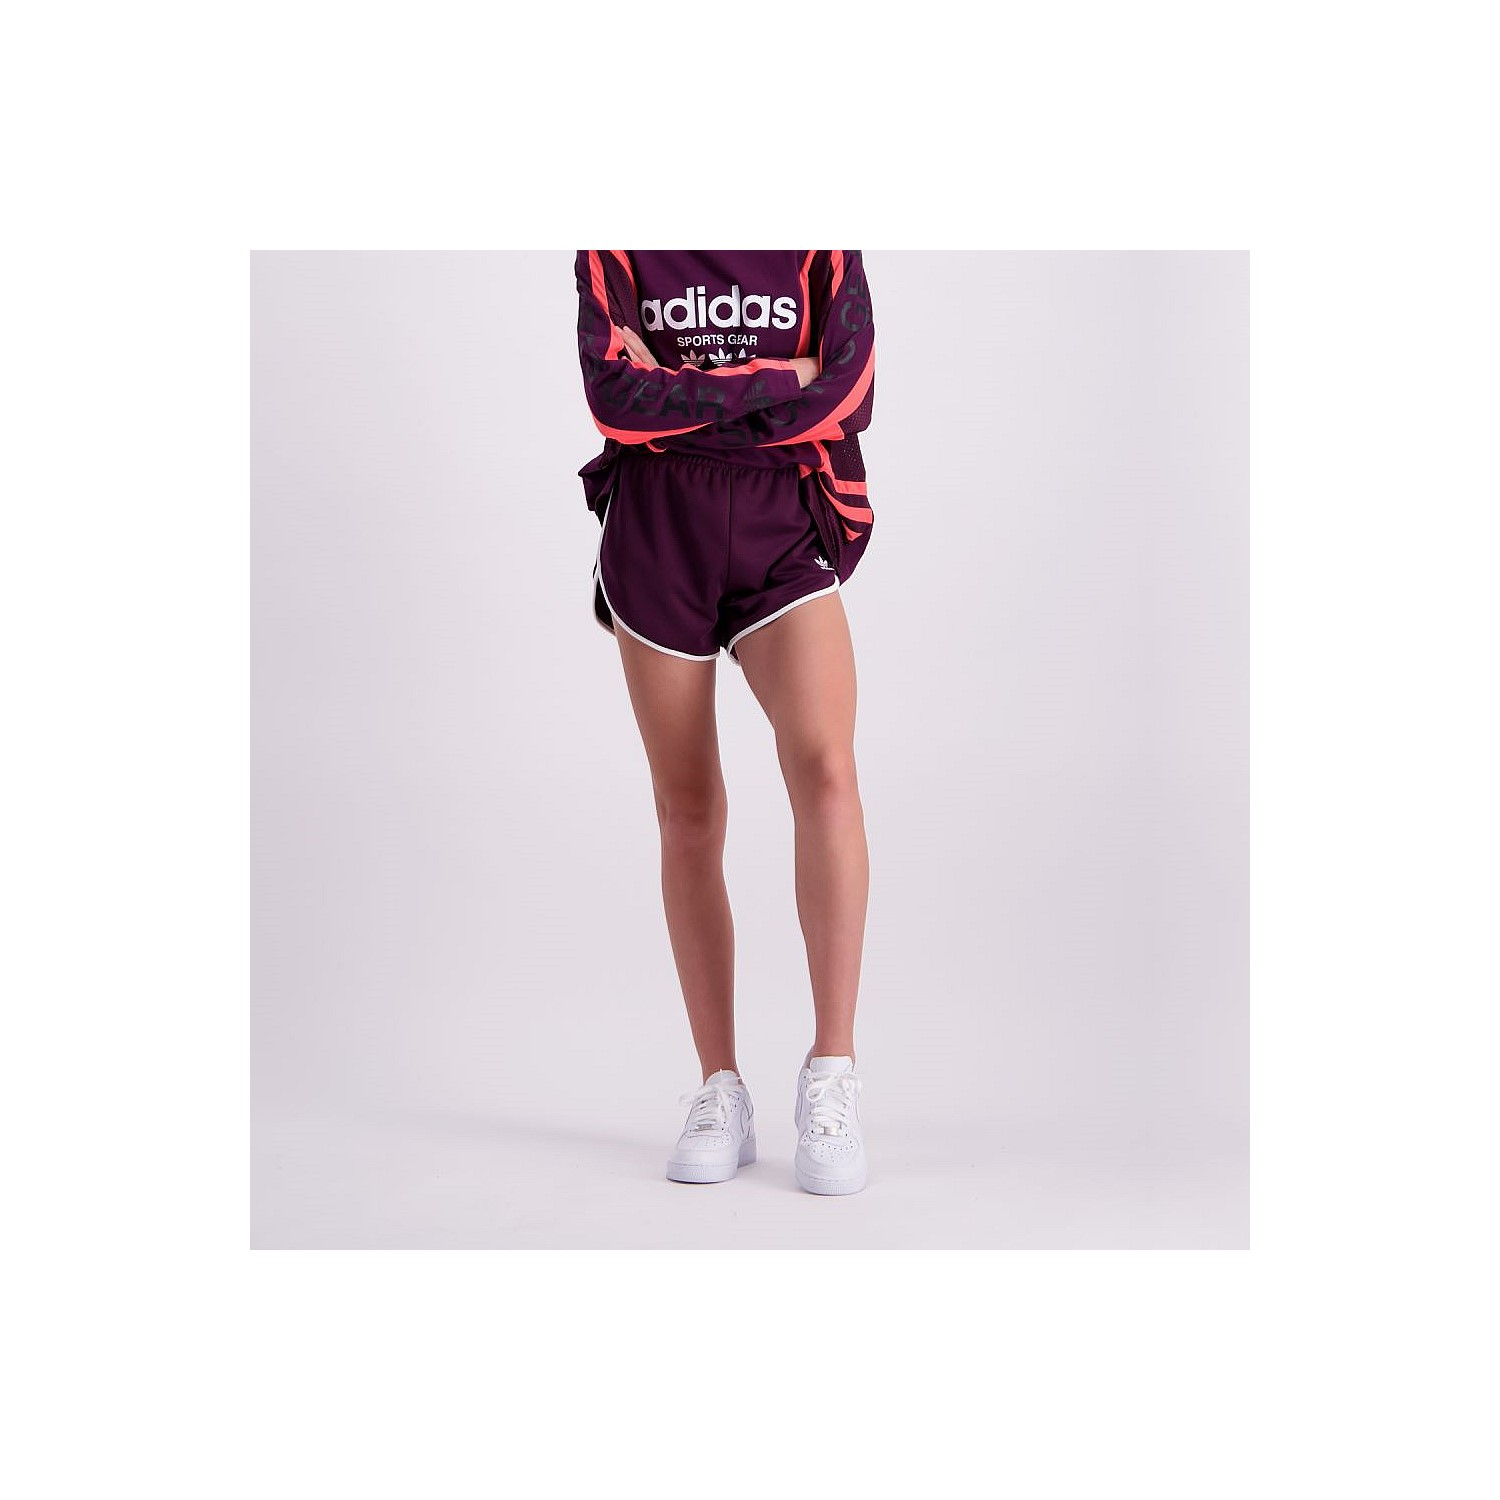 773078697b72 These chic shorts are made of a soft cotton blend and boast an iconic adidas  track suit colour. A small contrast embroidered Trefoil logo finishes the  look.